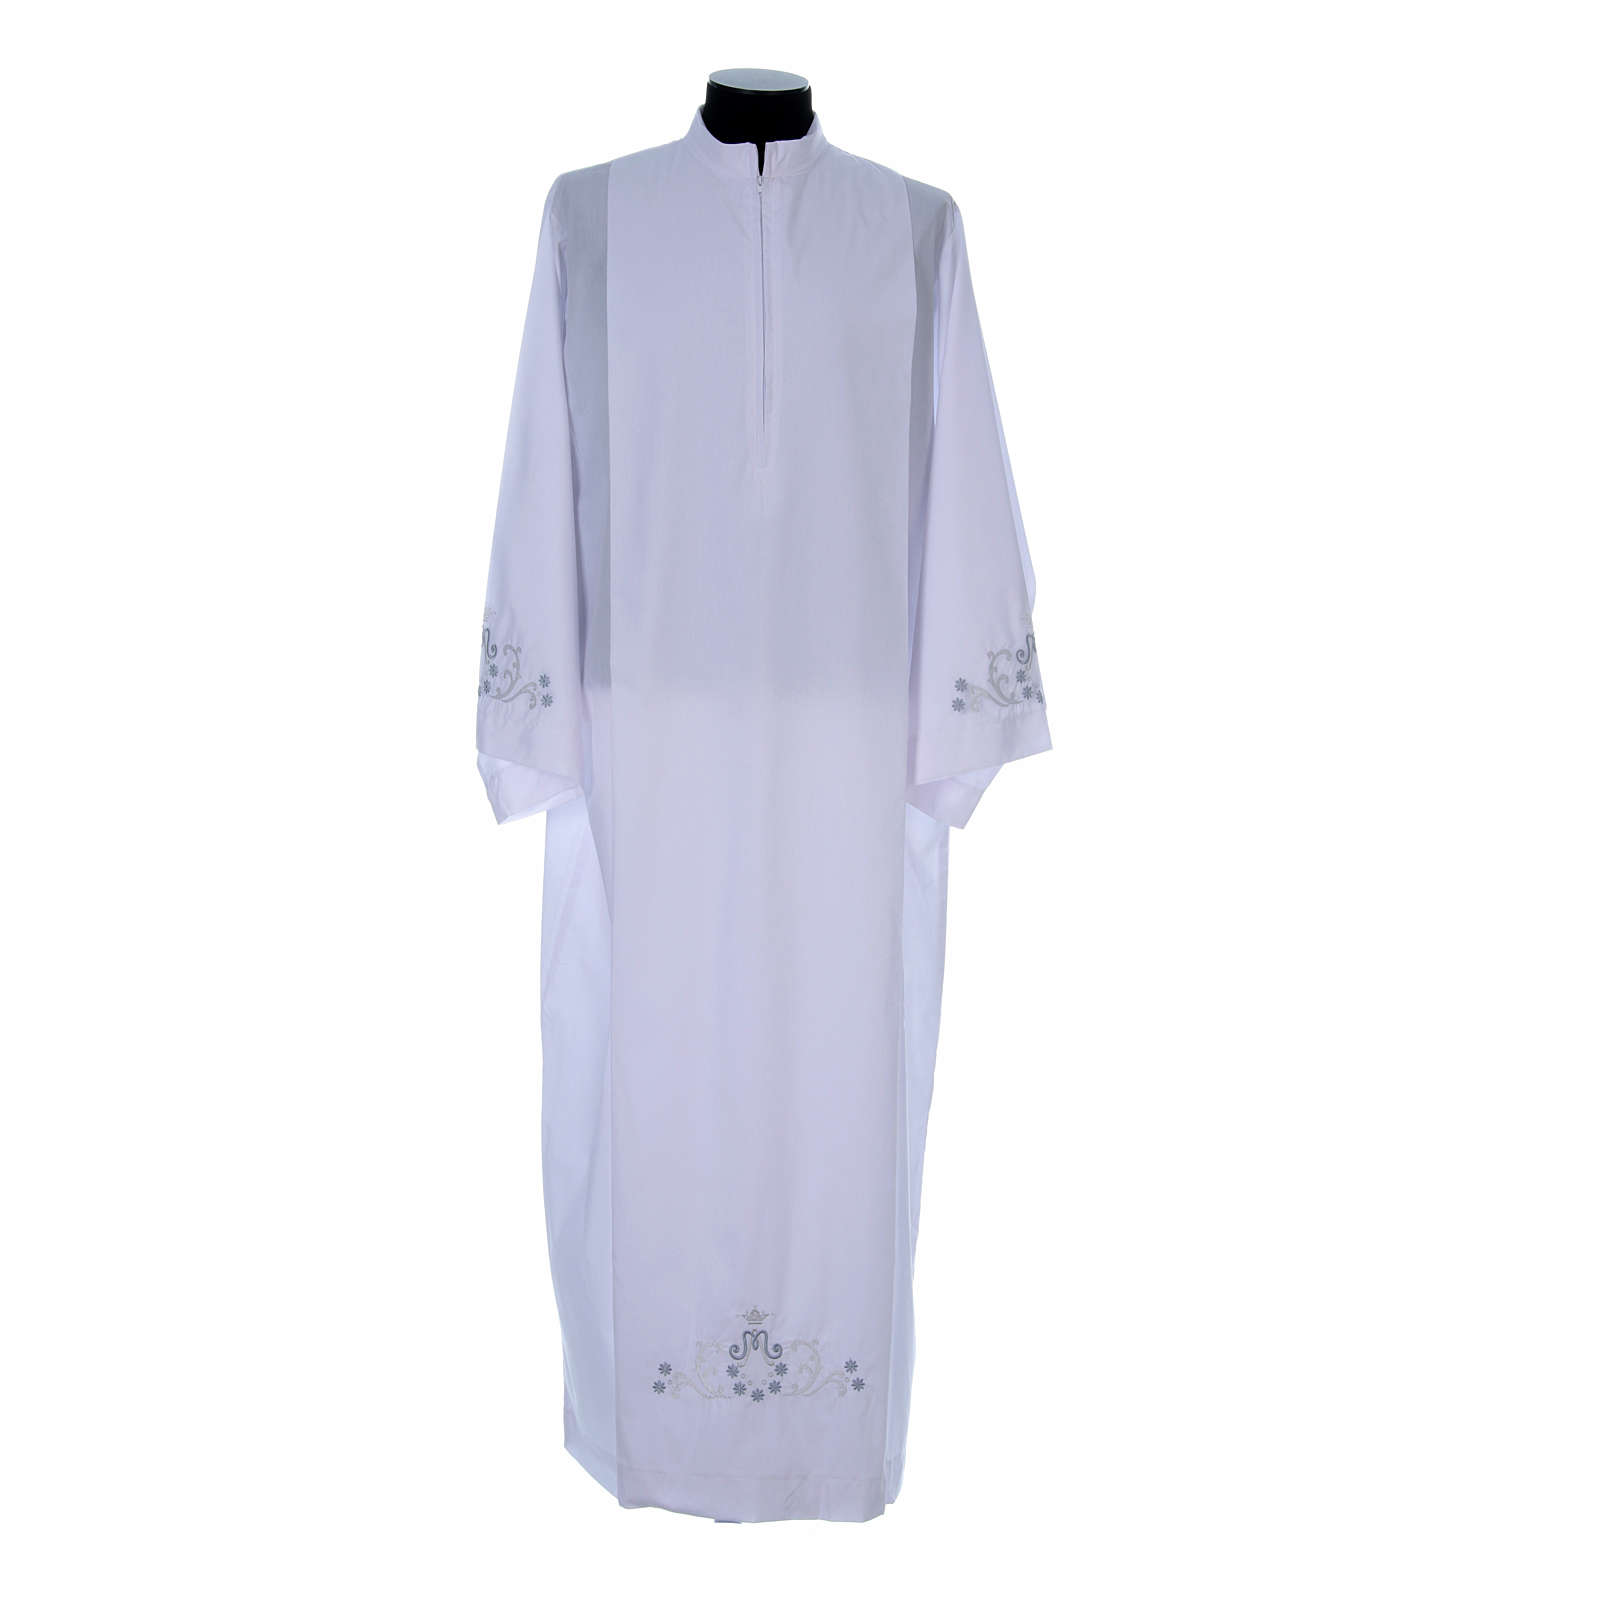 Deacon alb with Marian embroidery on back and front in cotton mix 4